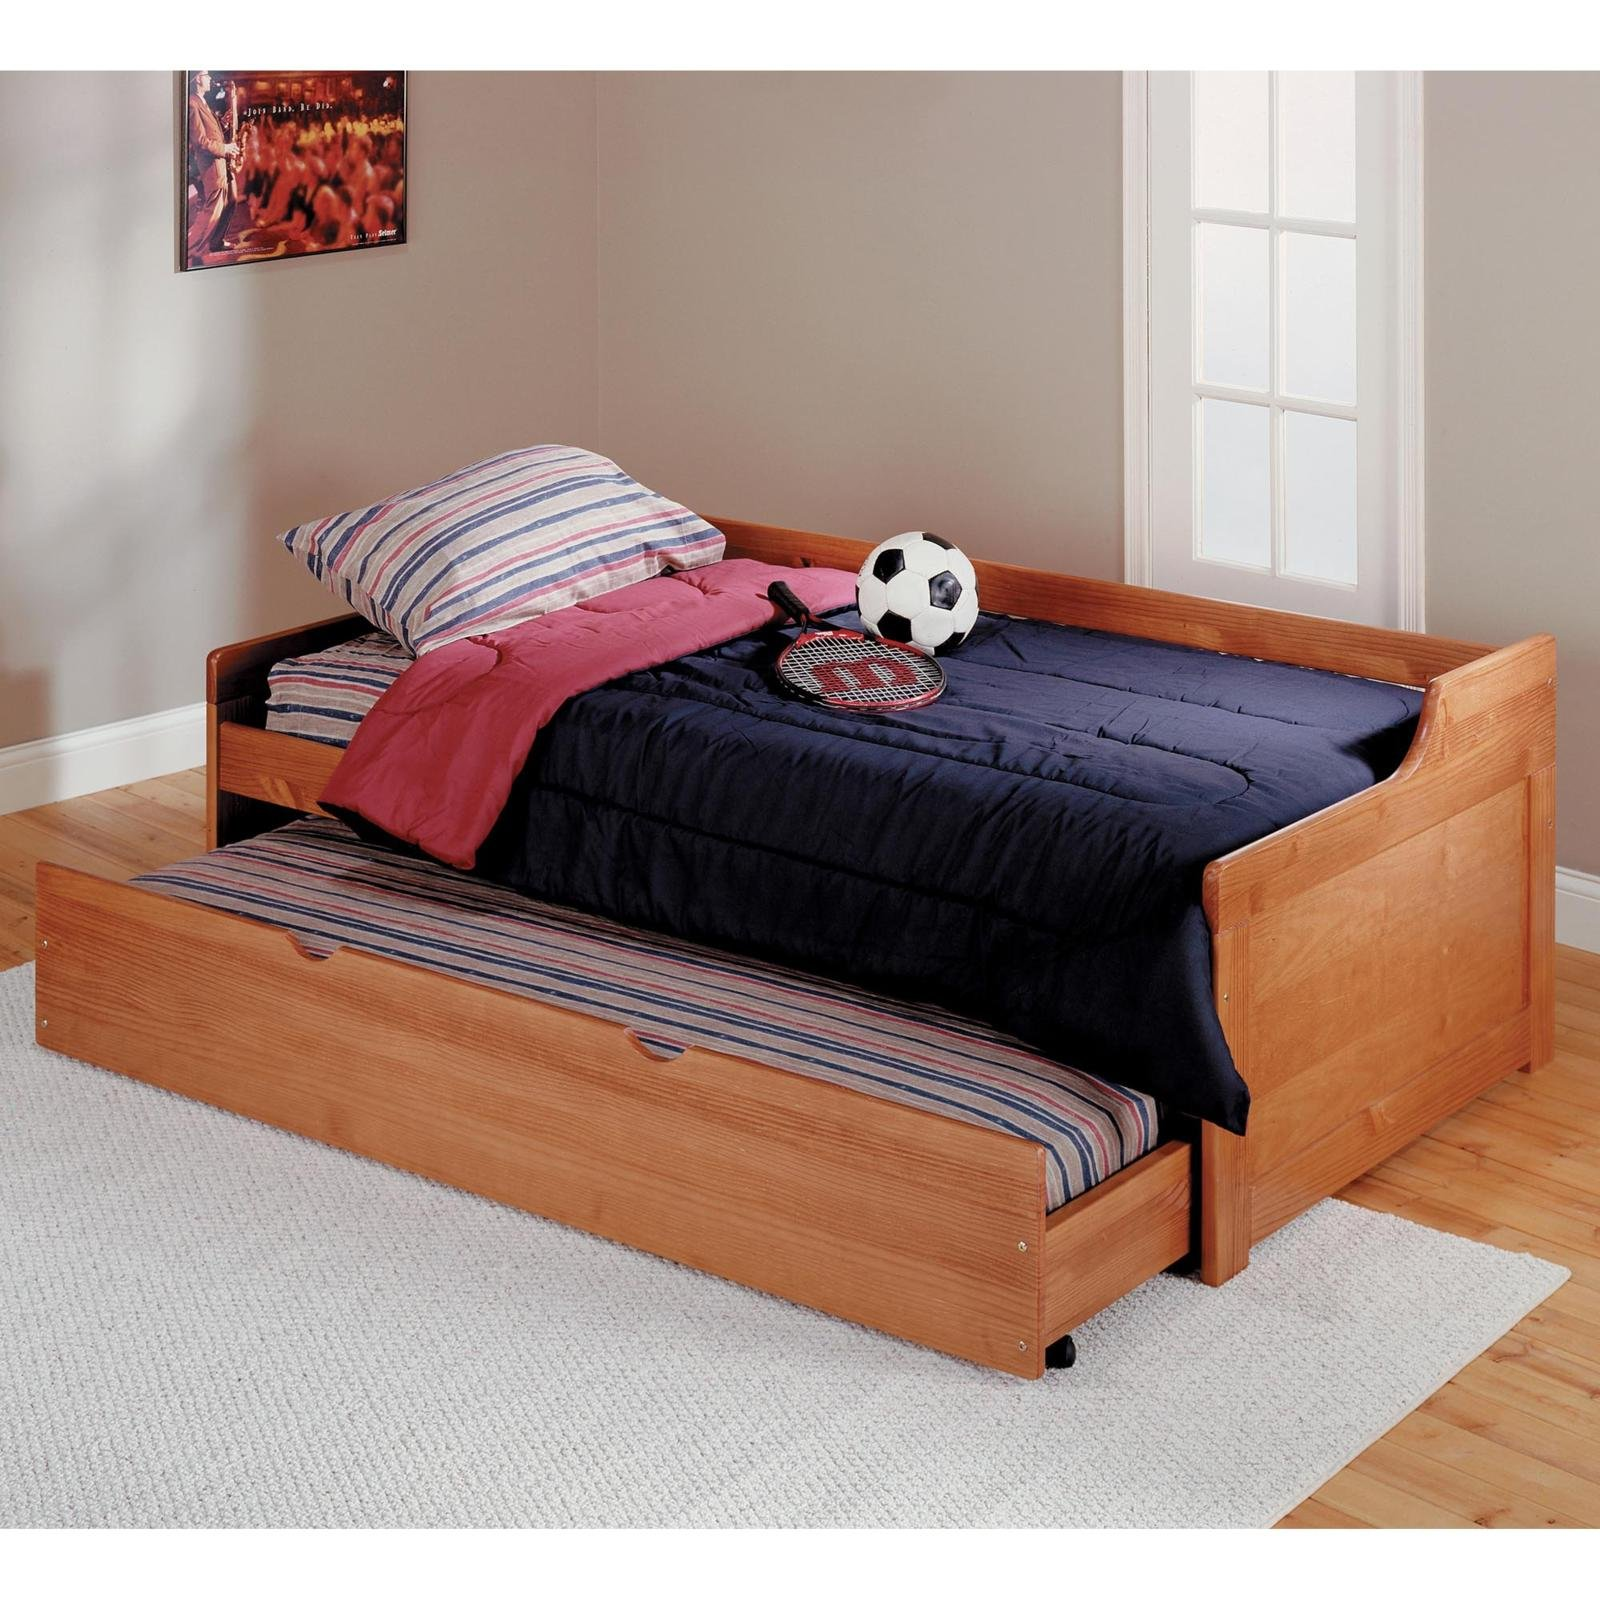 Woodworking trundle bed plans twin